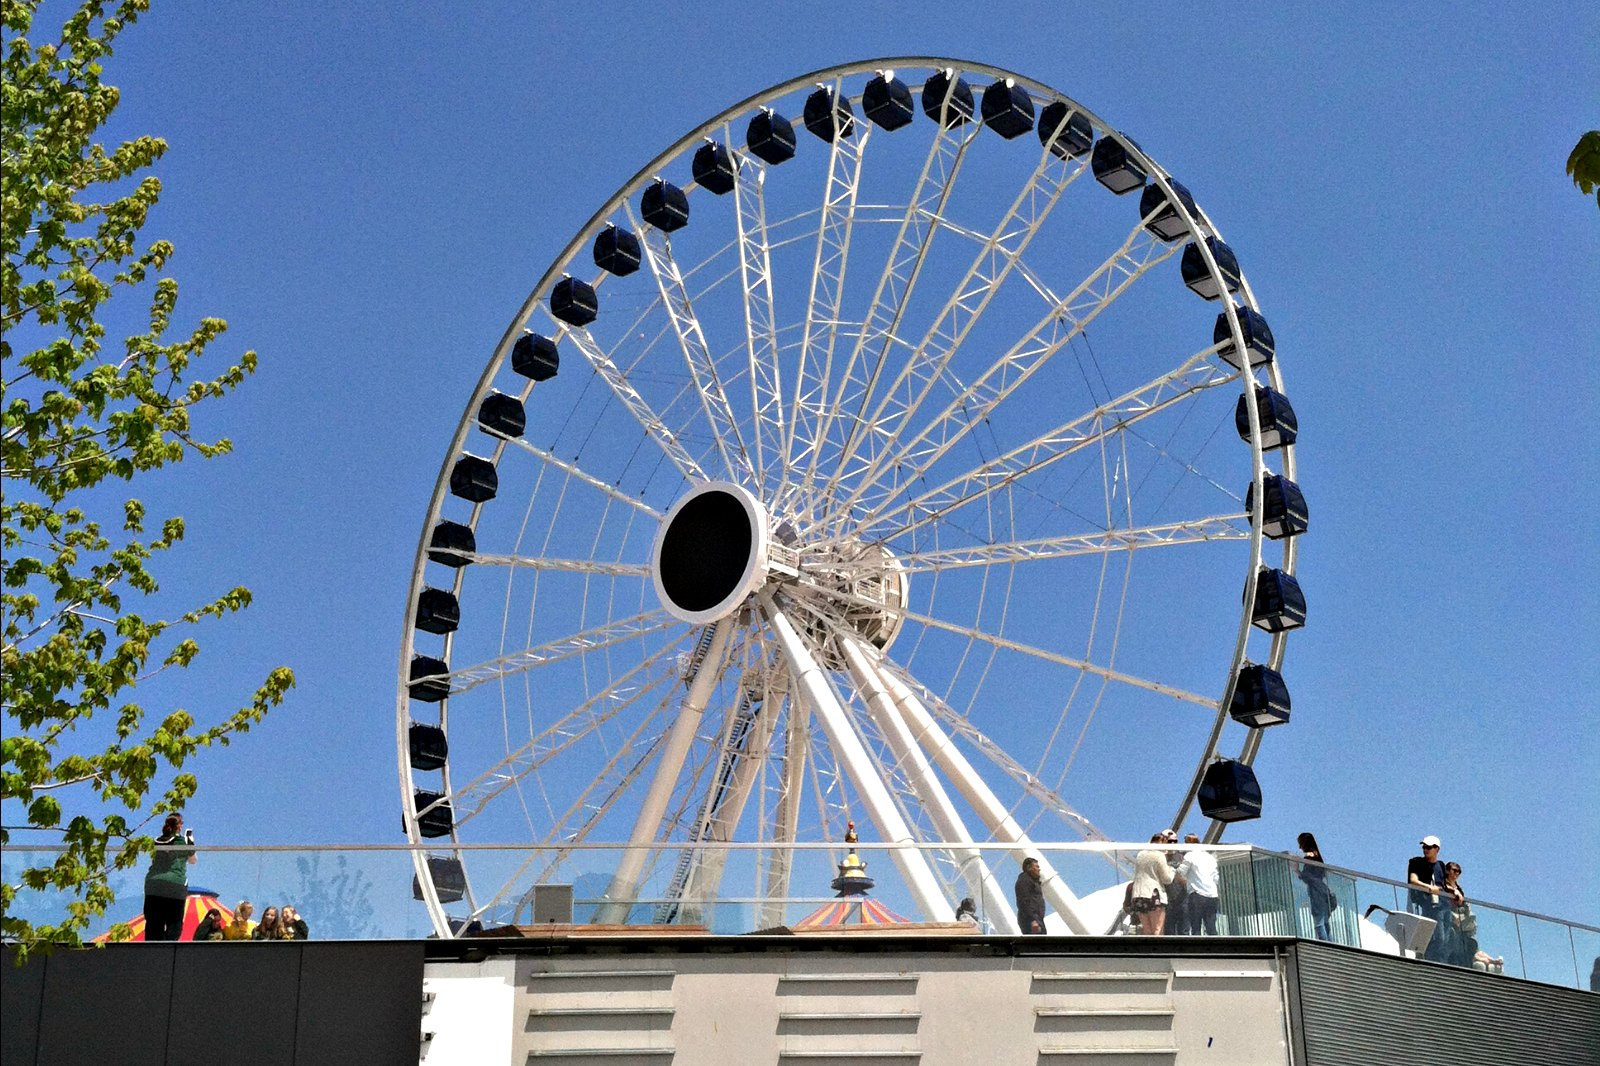 free kids events navy pier chicago on the cheap